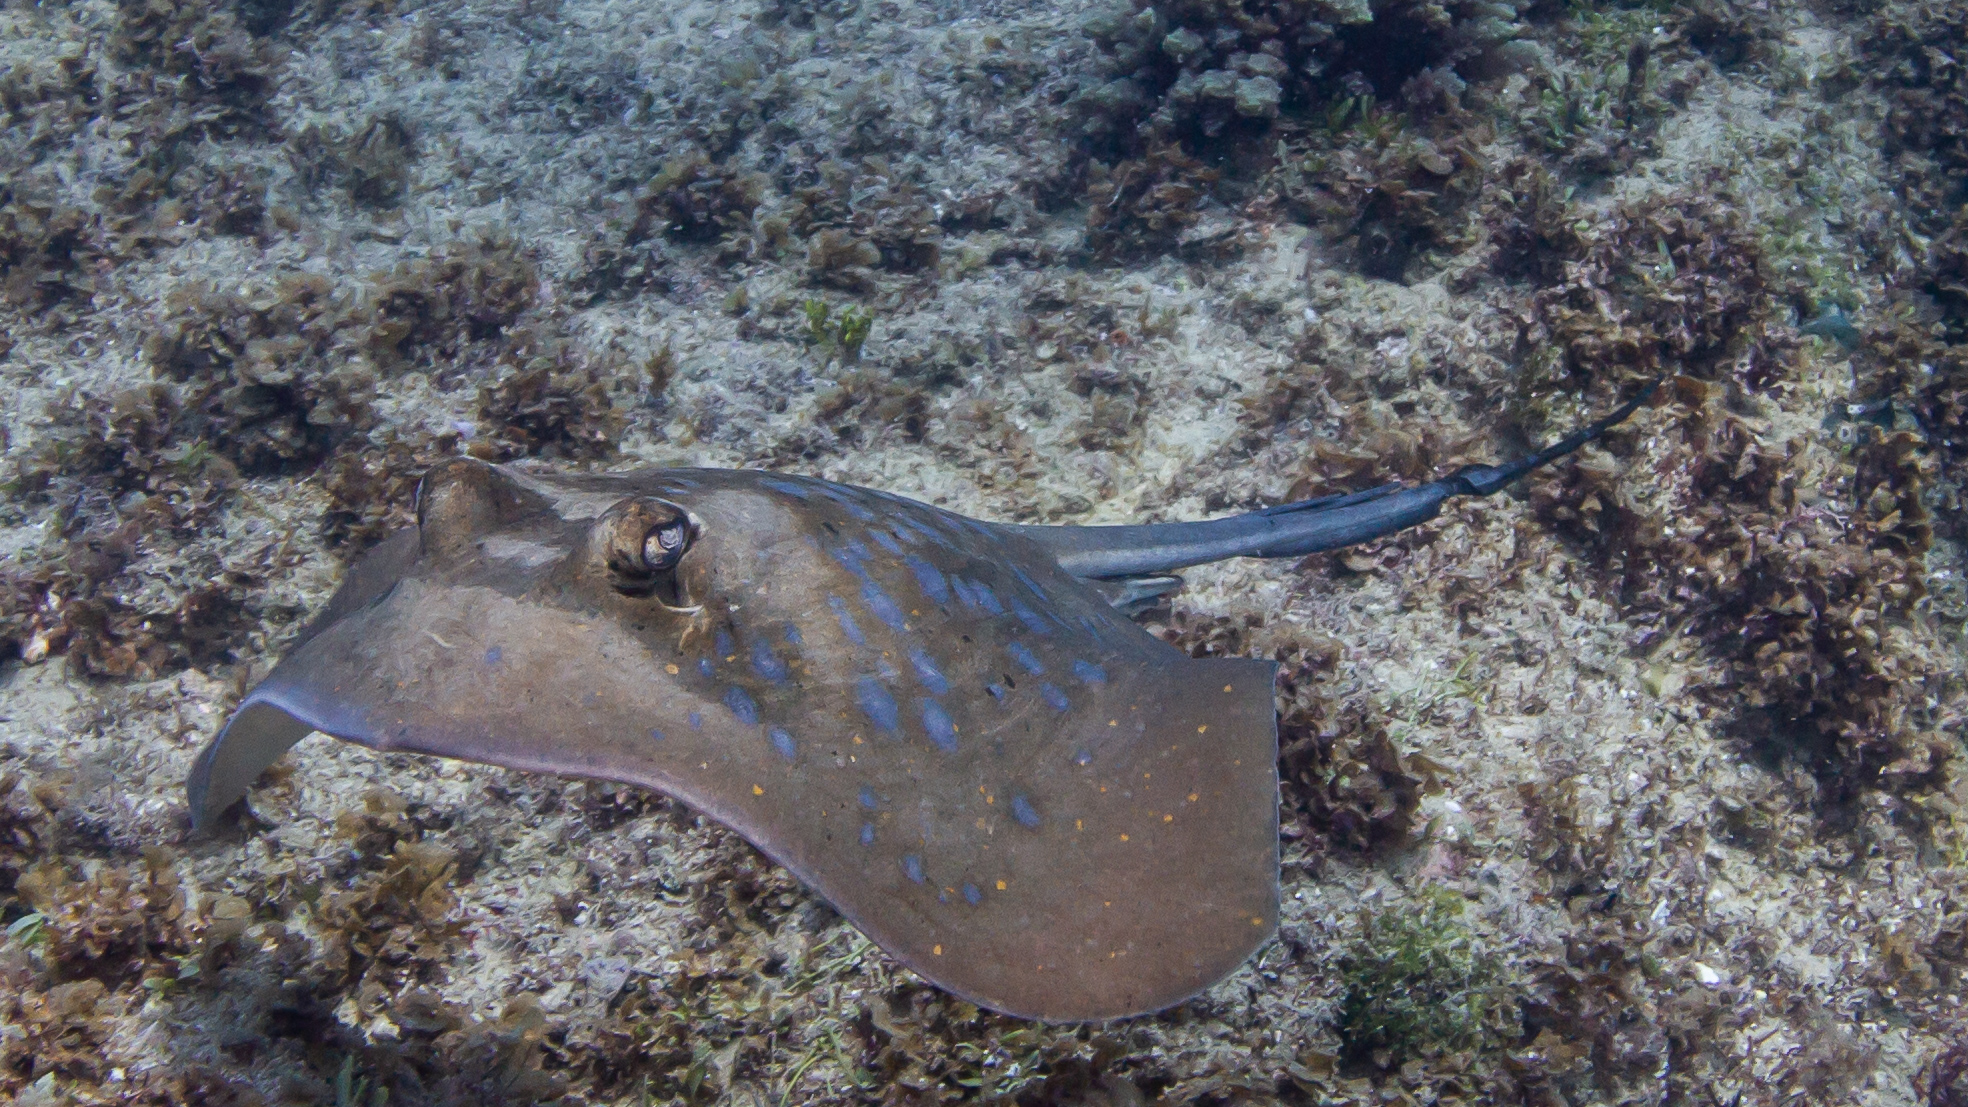 Blue Spotted Sting Ray North Stradbroke Island Queensland Australia